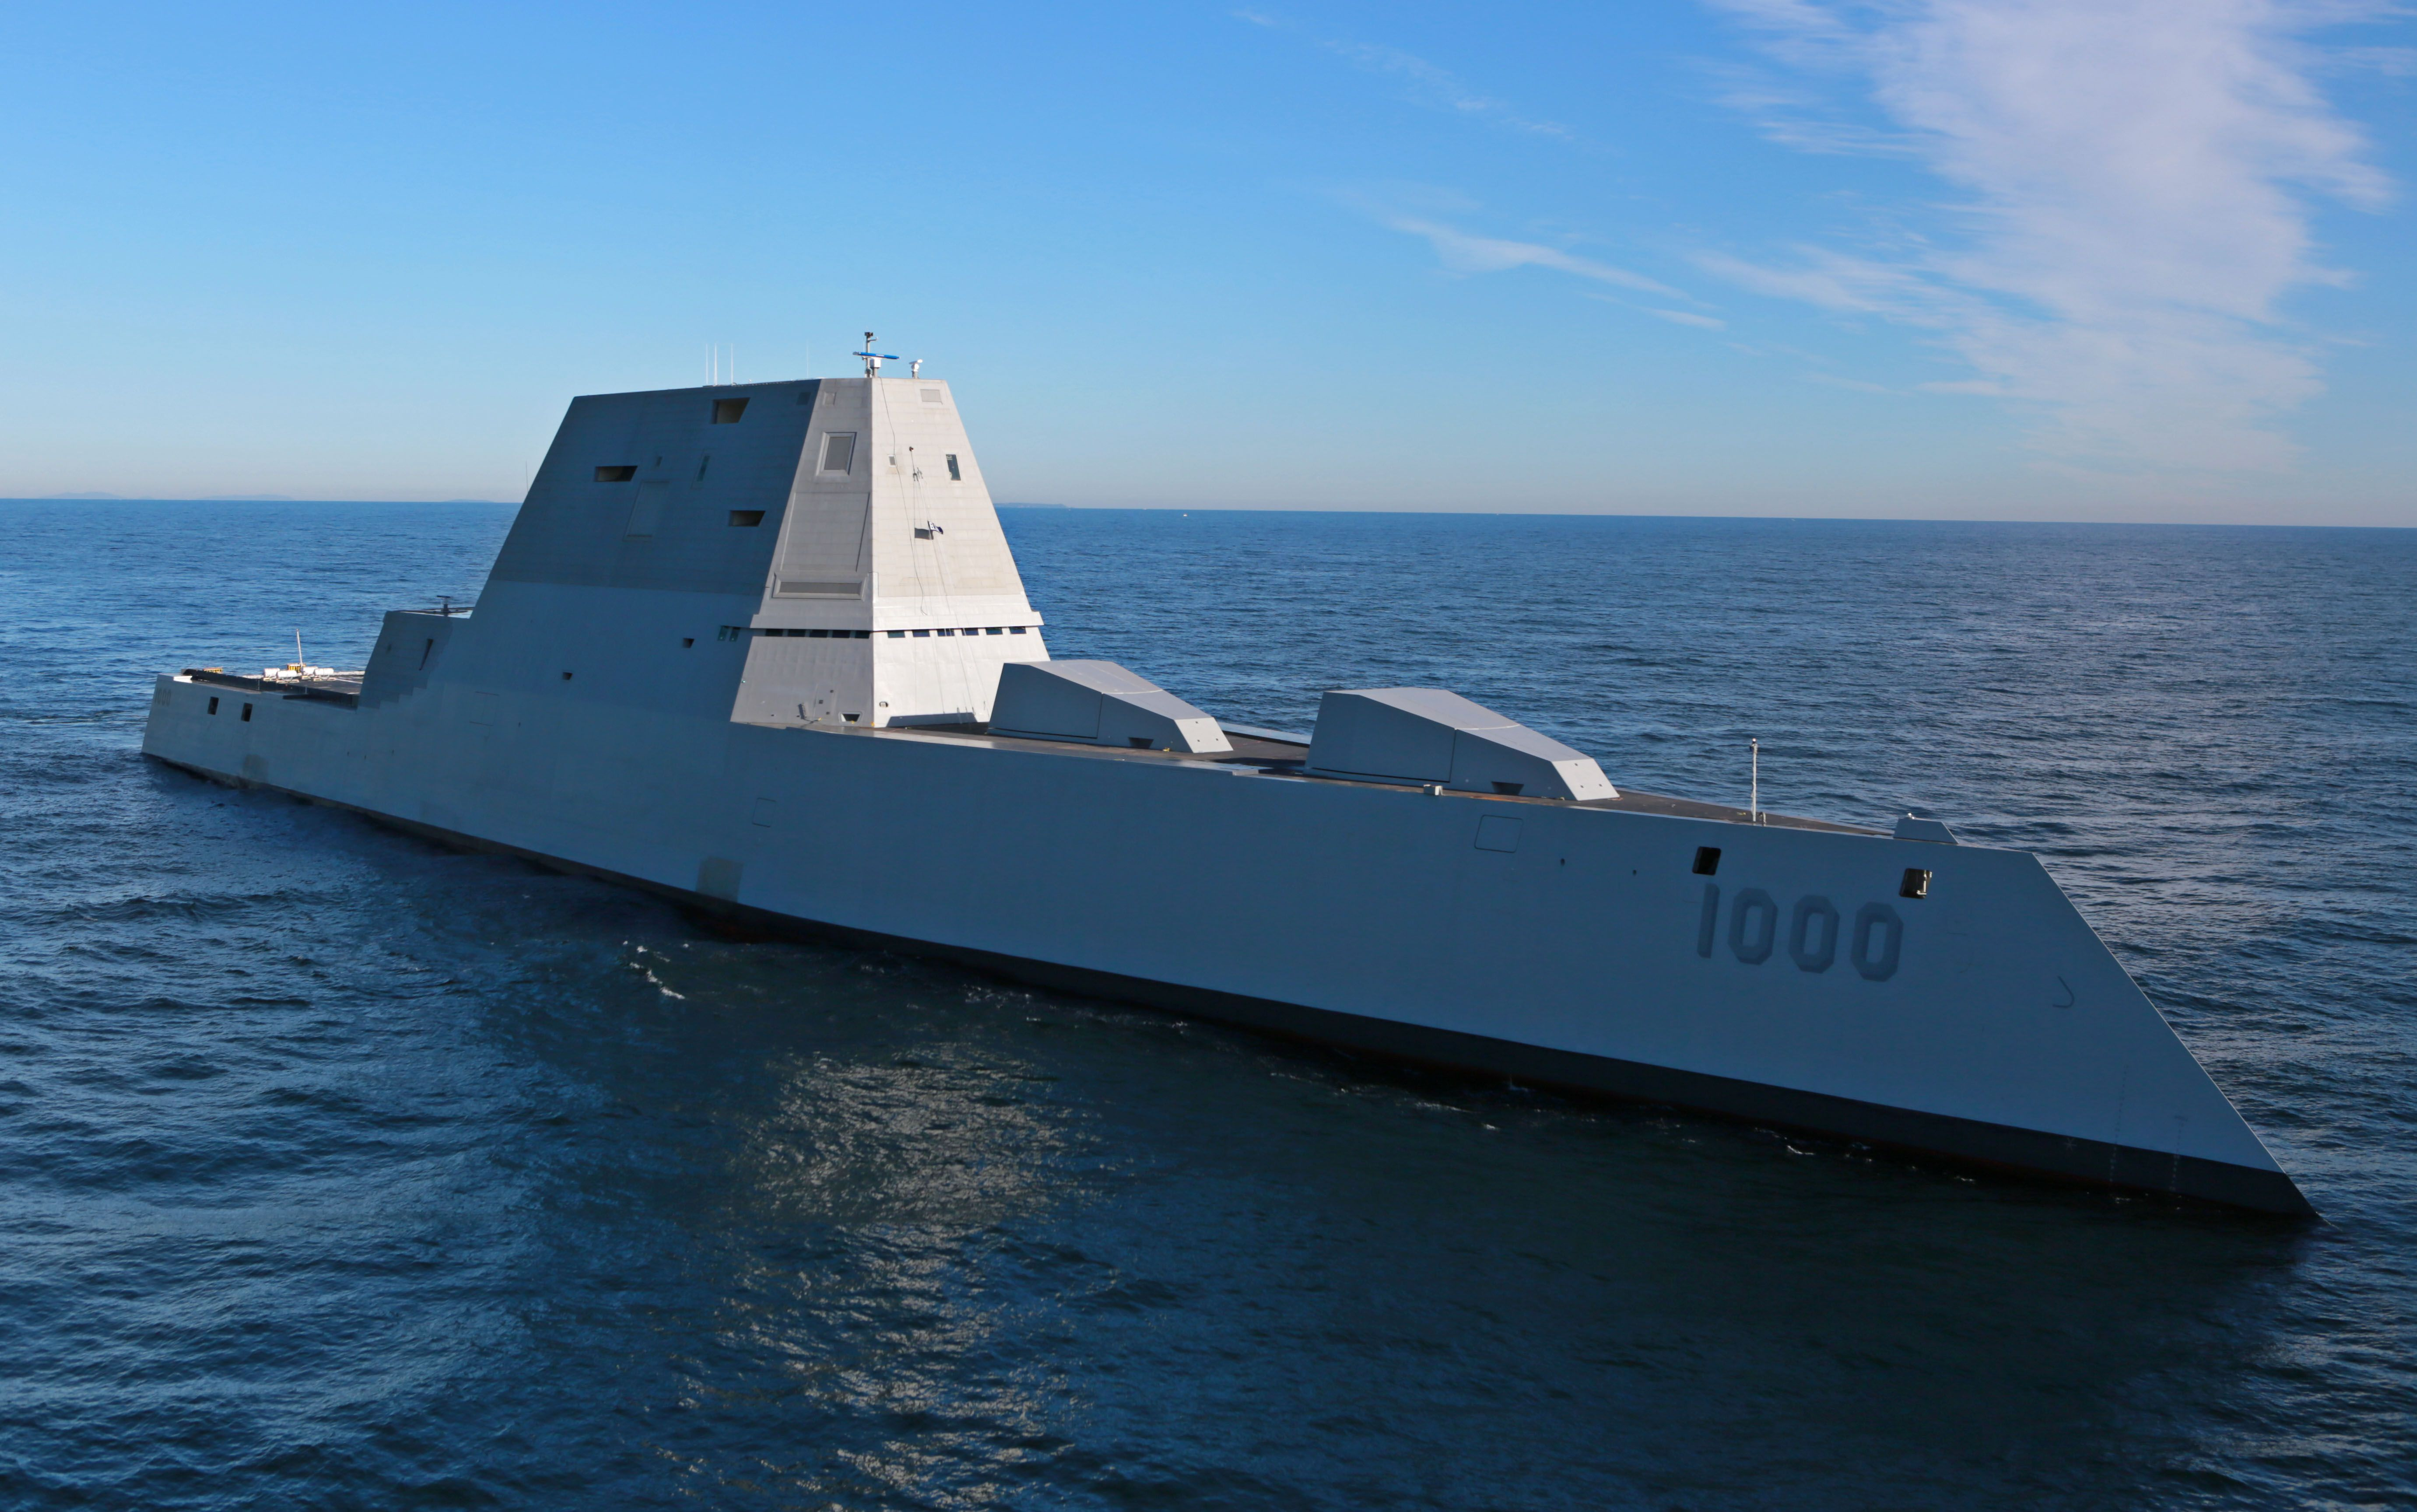 The Navy's Next Warship Will Look a Lot Like the USS Zumwalt